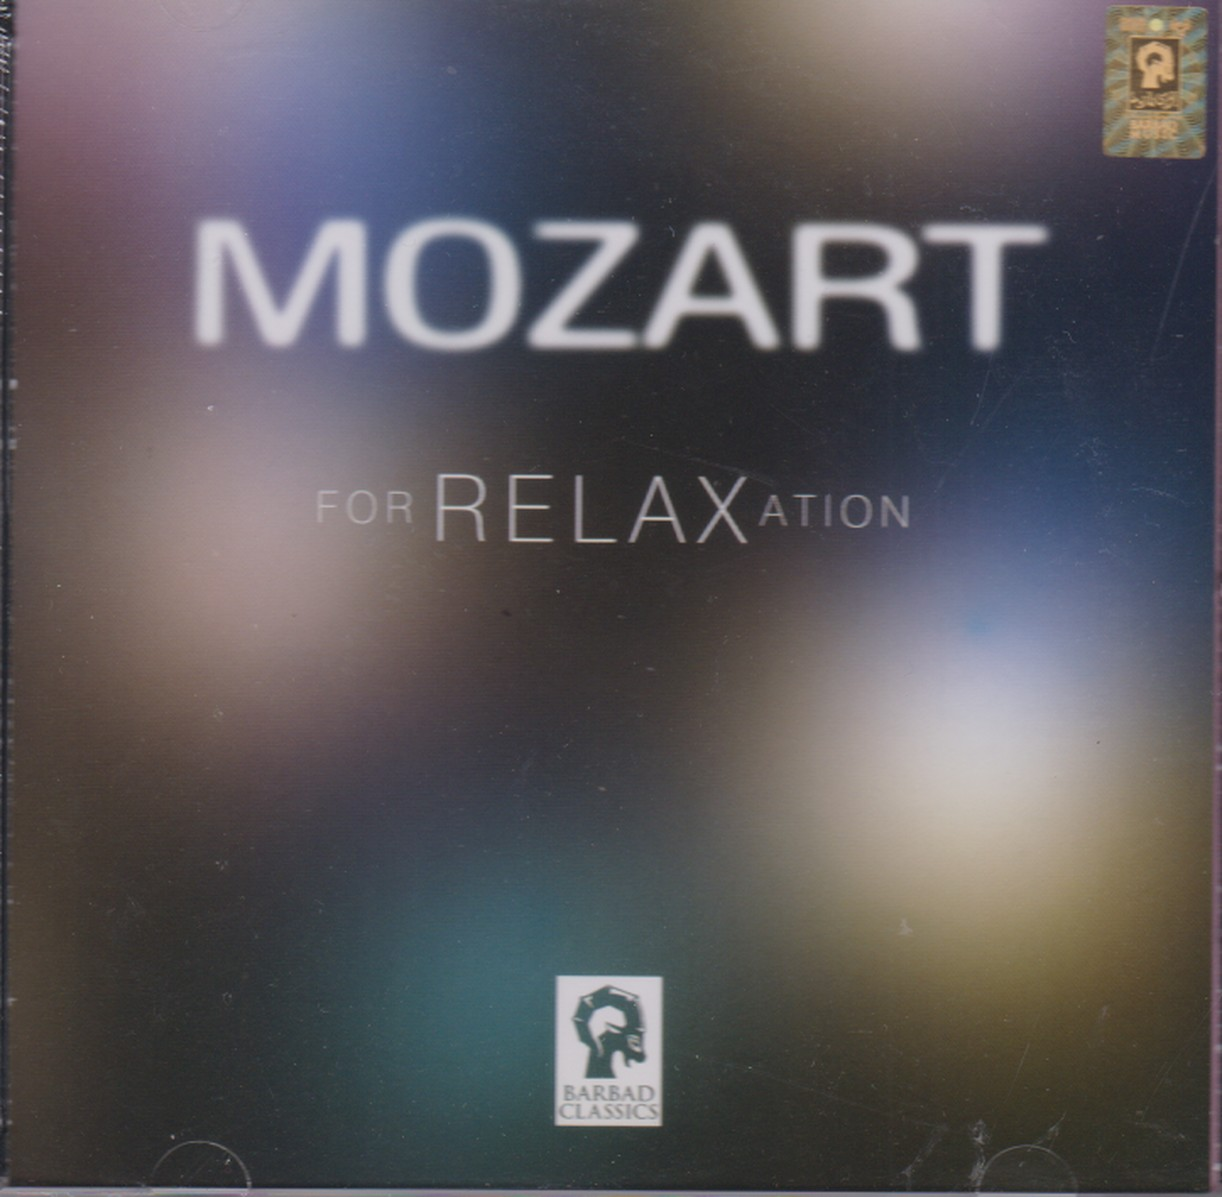 MOZART for relaxtion